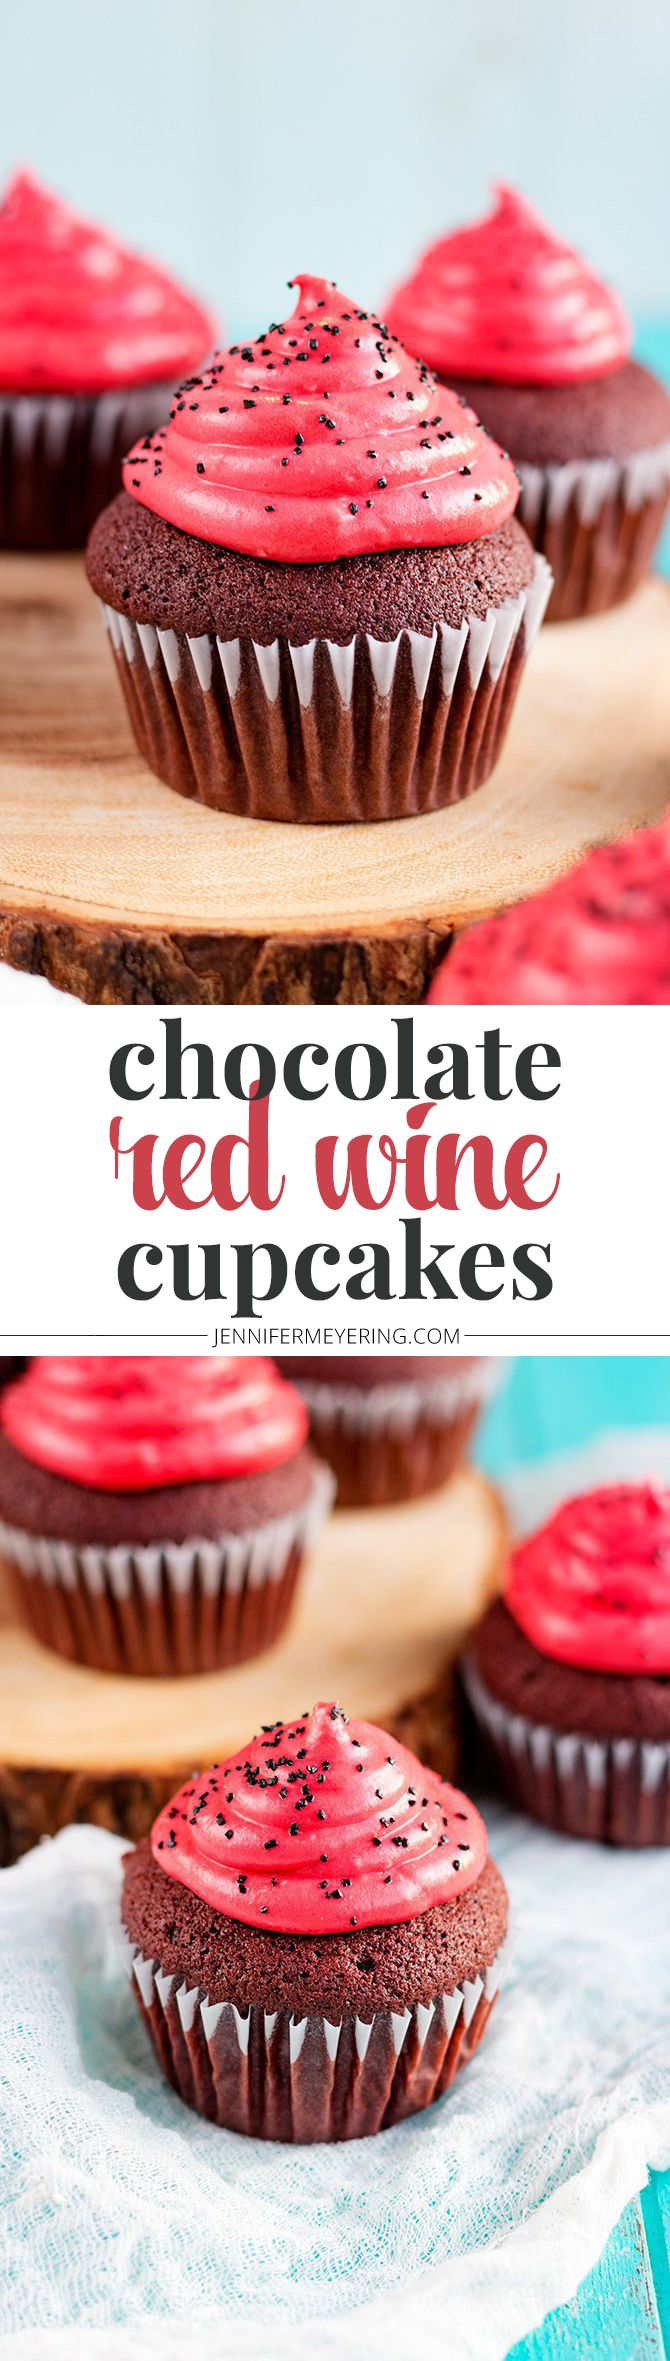 Chocolate Red Wine Cupcakes - JenniferMeyering.com